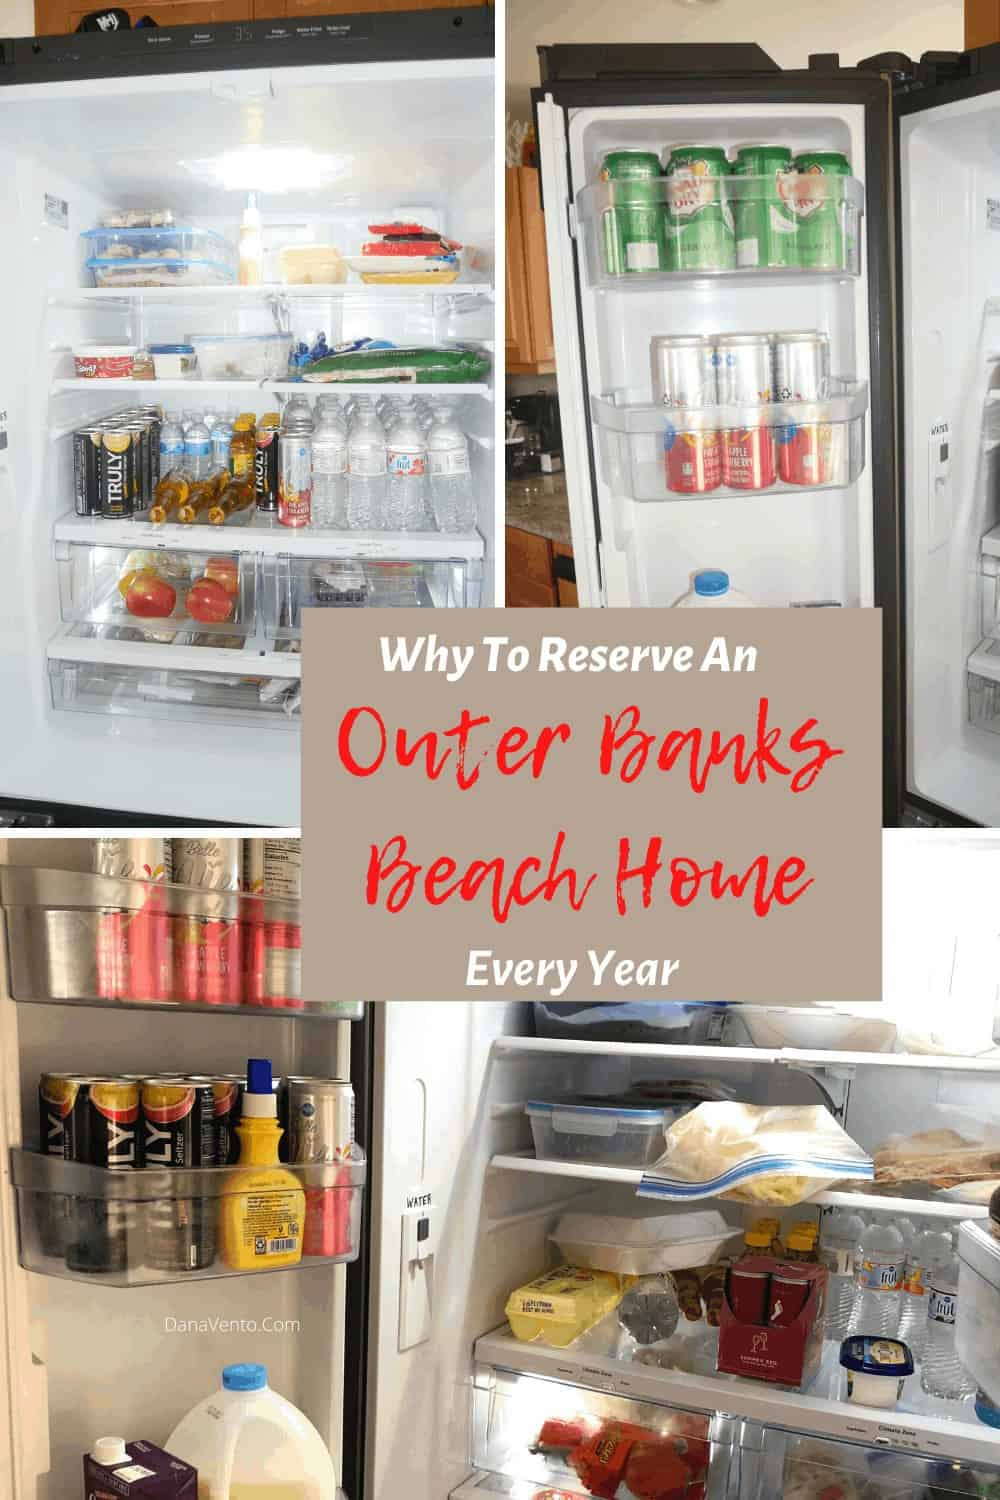 stocked refrigerator in Outer Banks Beach Home